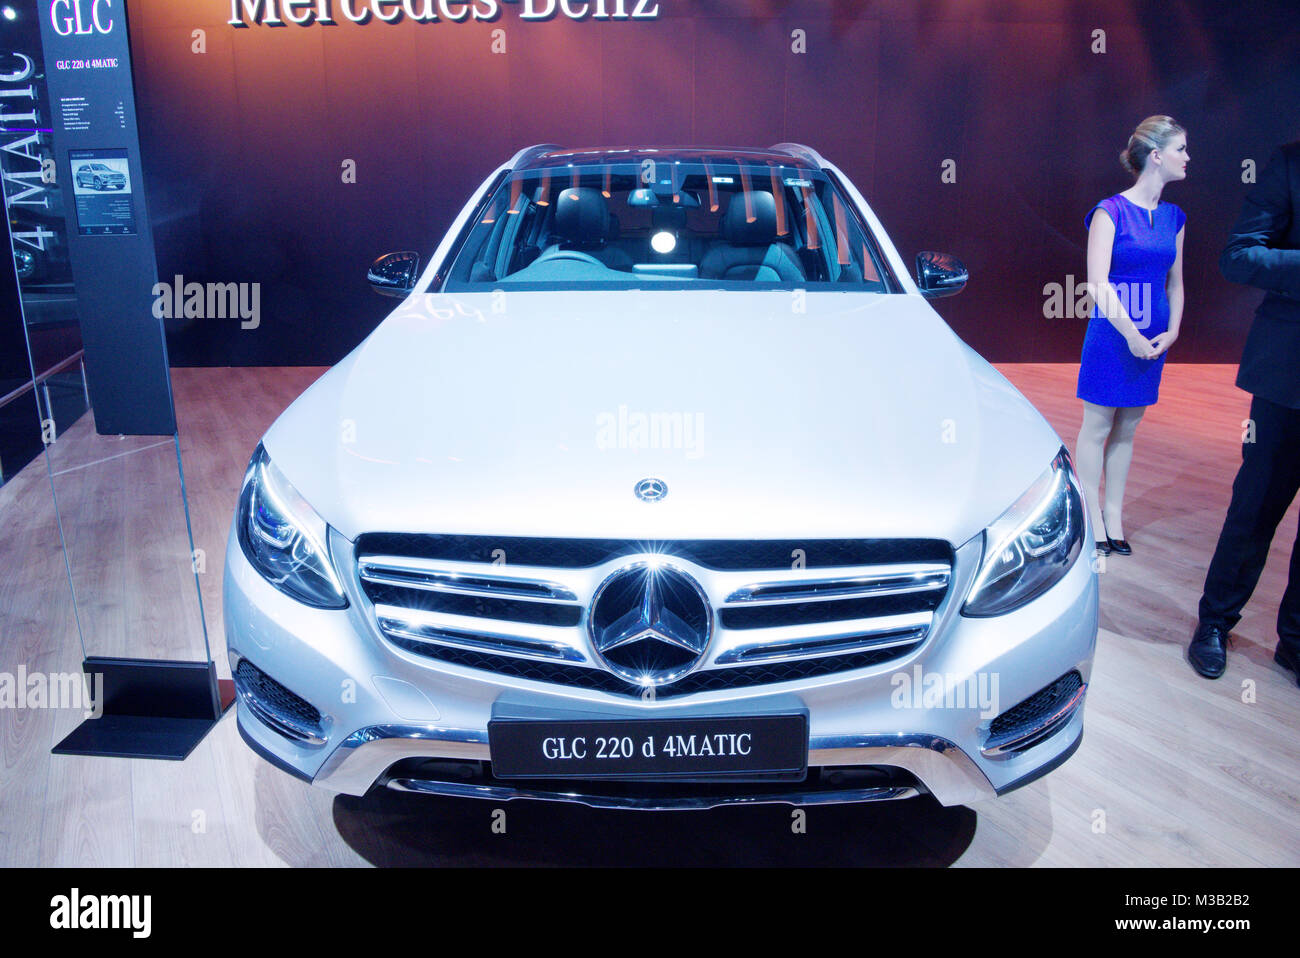 Greater Noida, India. 9th February 2018. Mercedes-Benz GLC 22d 4Matic SUV is on display at the Auto Expo 2018 at - Stock Image